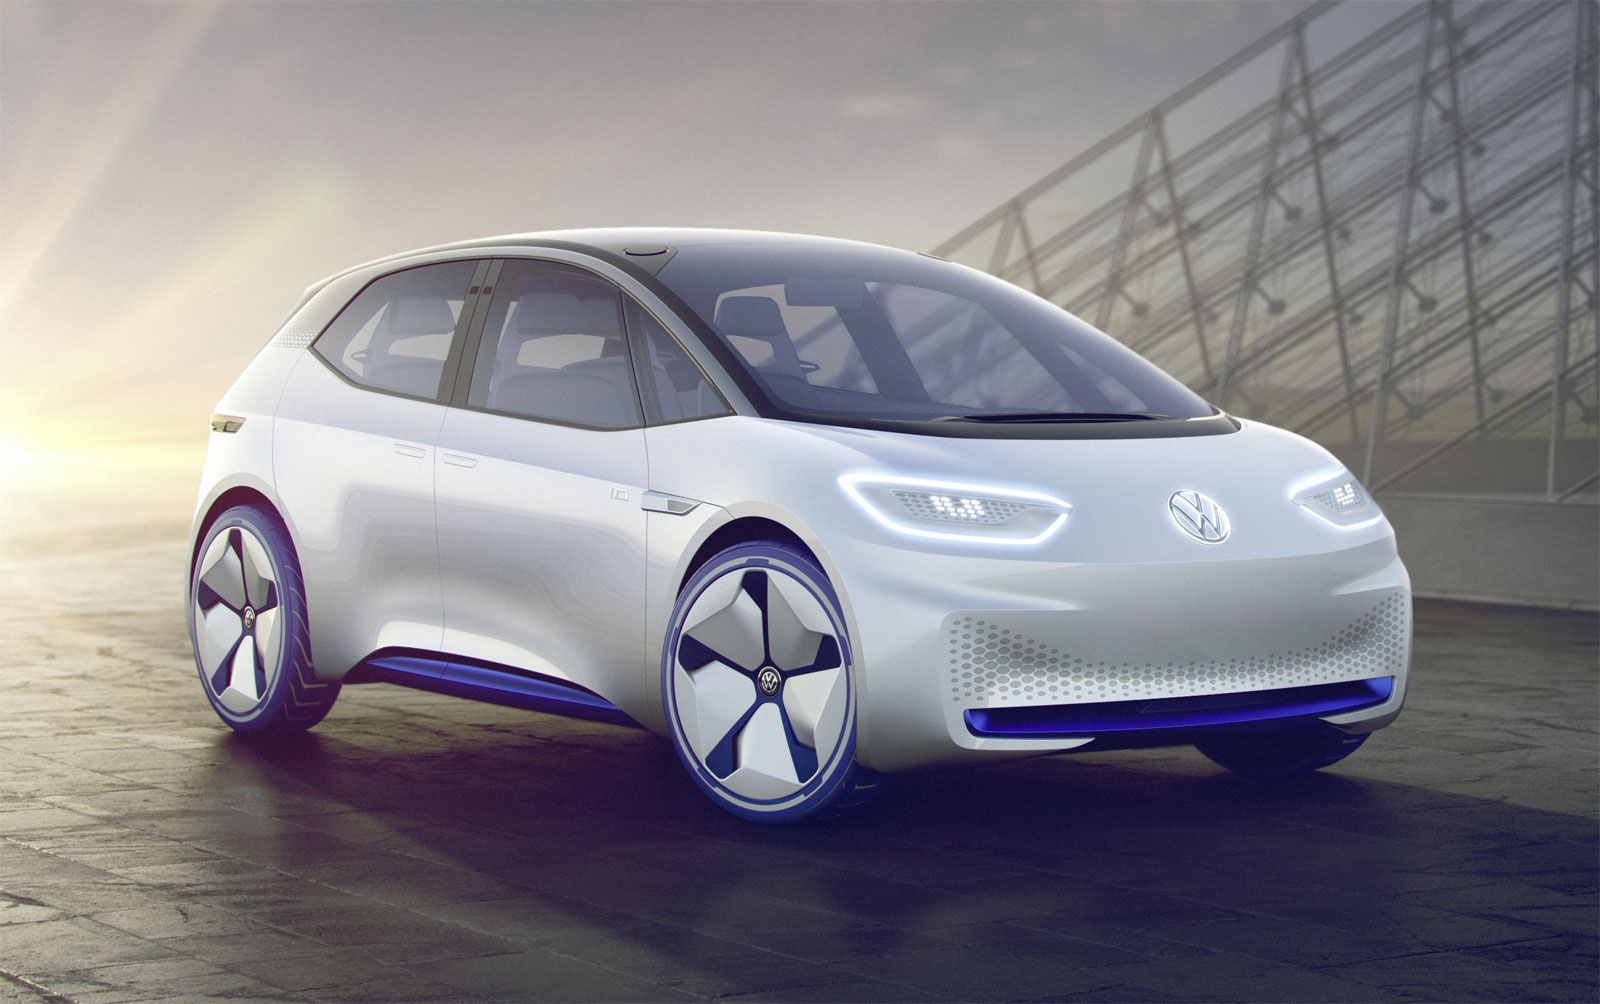 Volkswagen Puts Some Spark In The Electric Car Sector With Its I.D Showcar 6